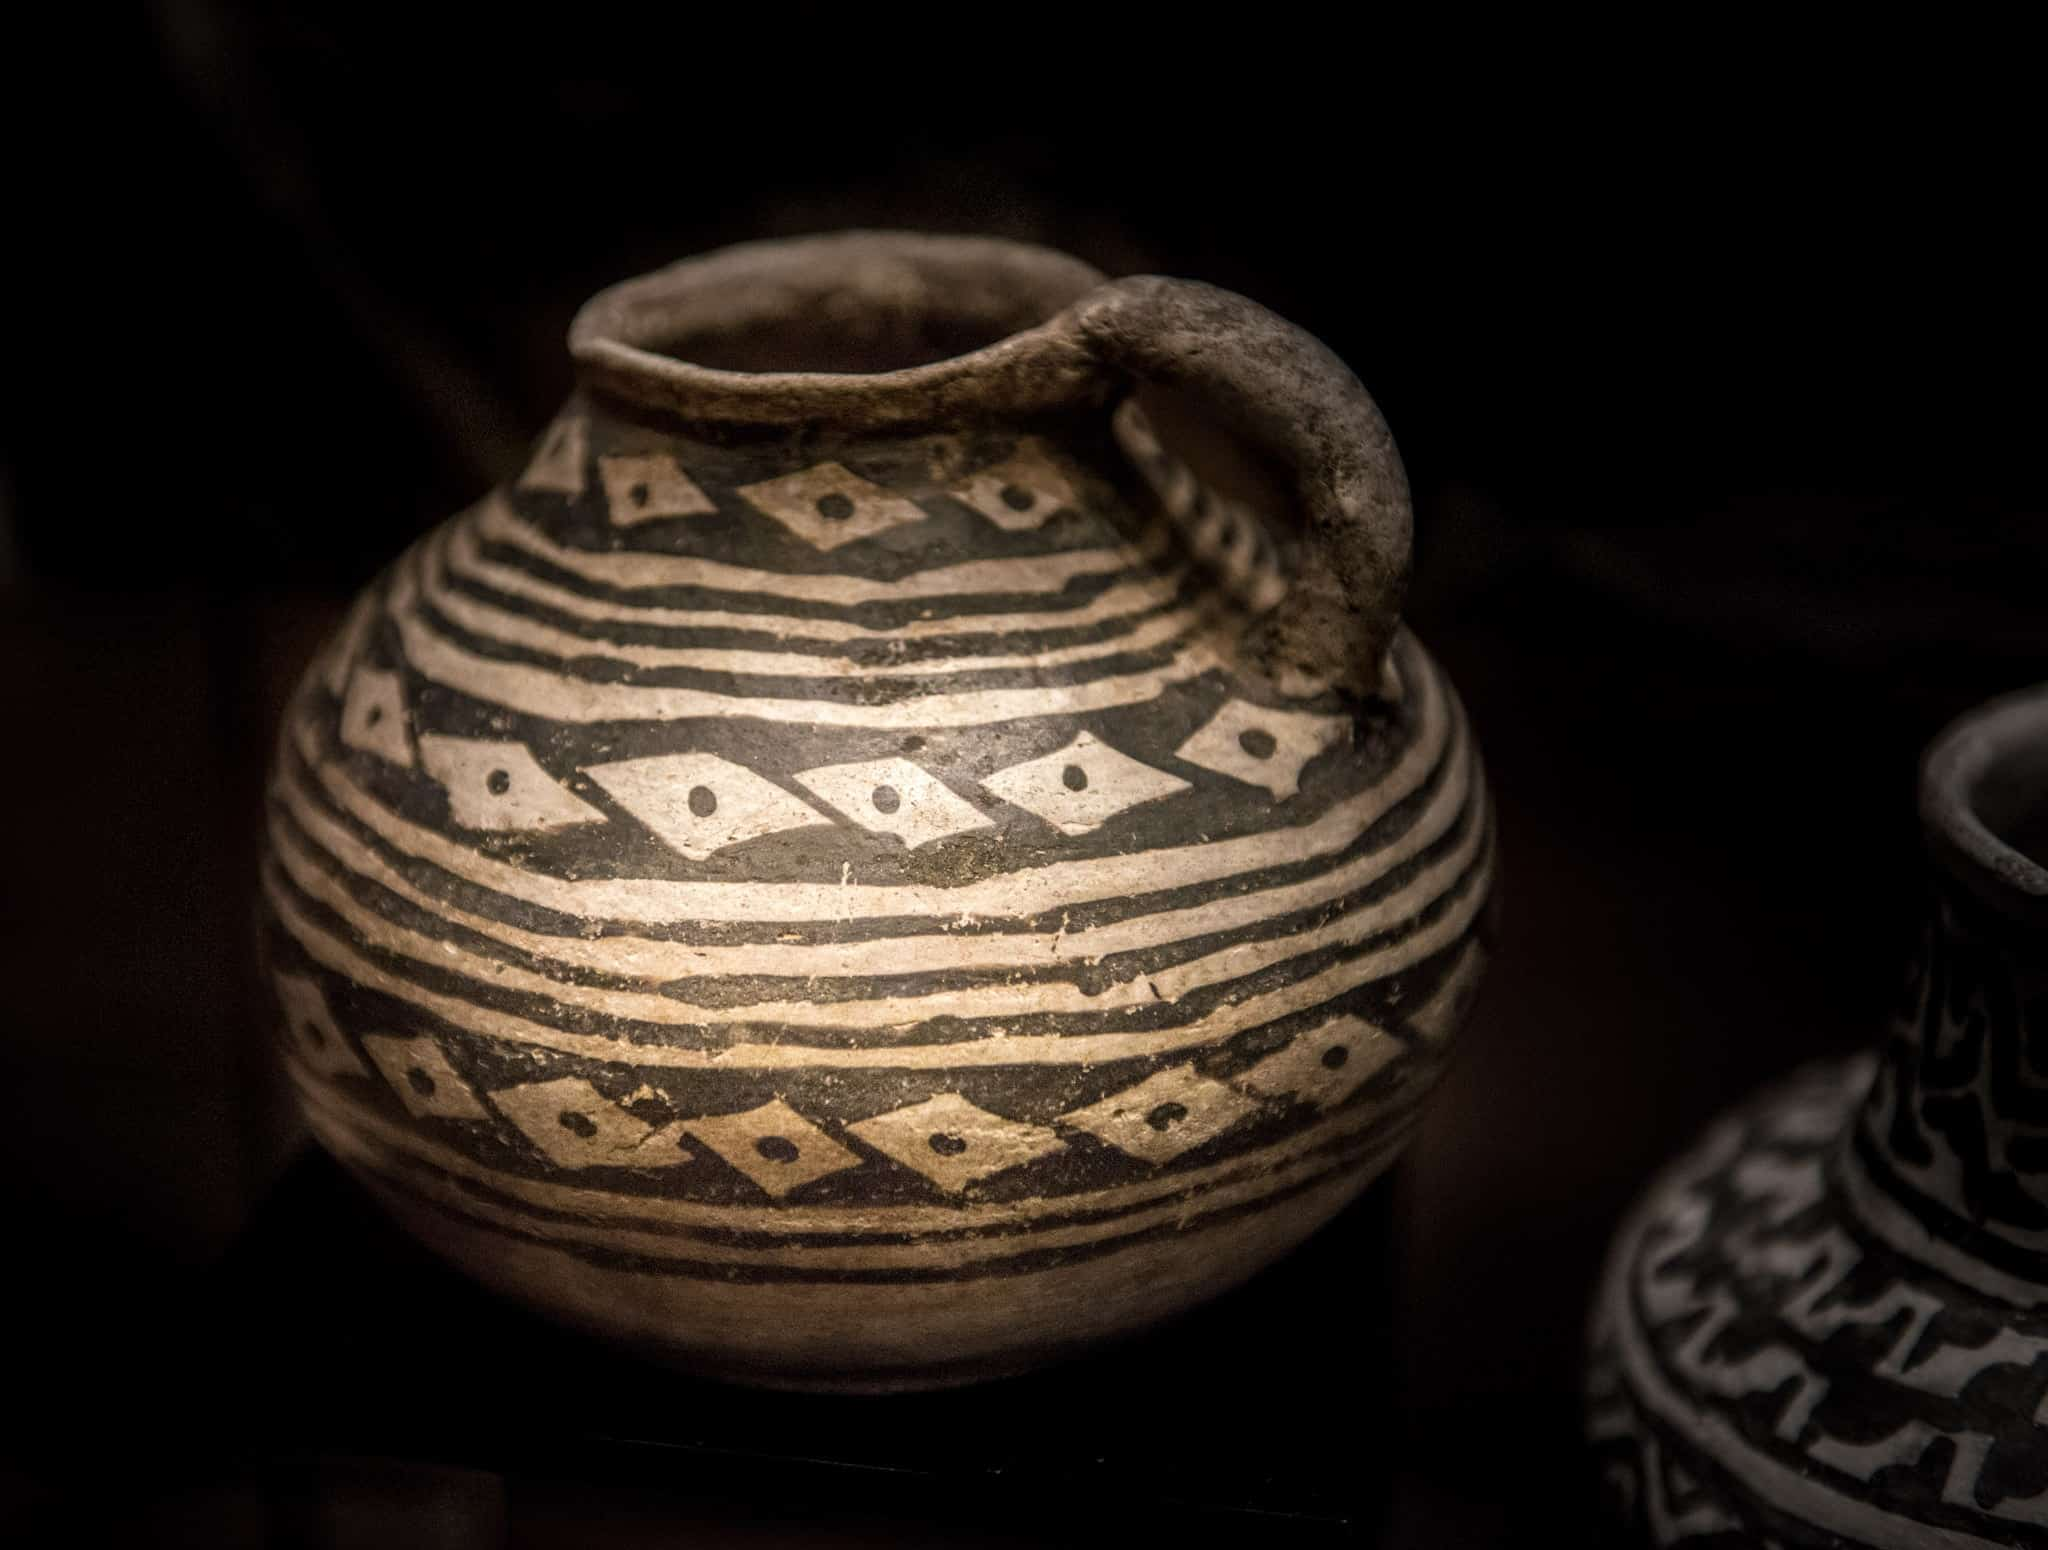 A ancestral Pueblan pot on exhibit in the Tusayan Museum on the South Rim of the Grand Canyon in Arizona.